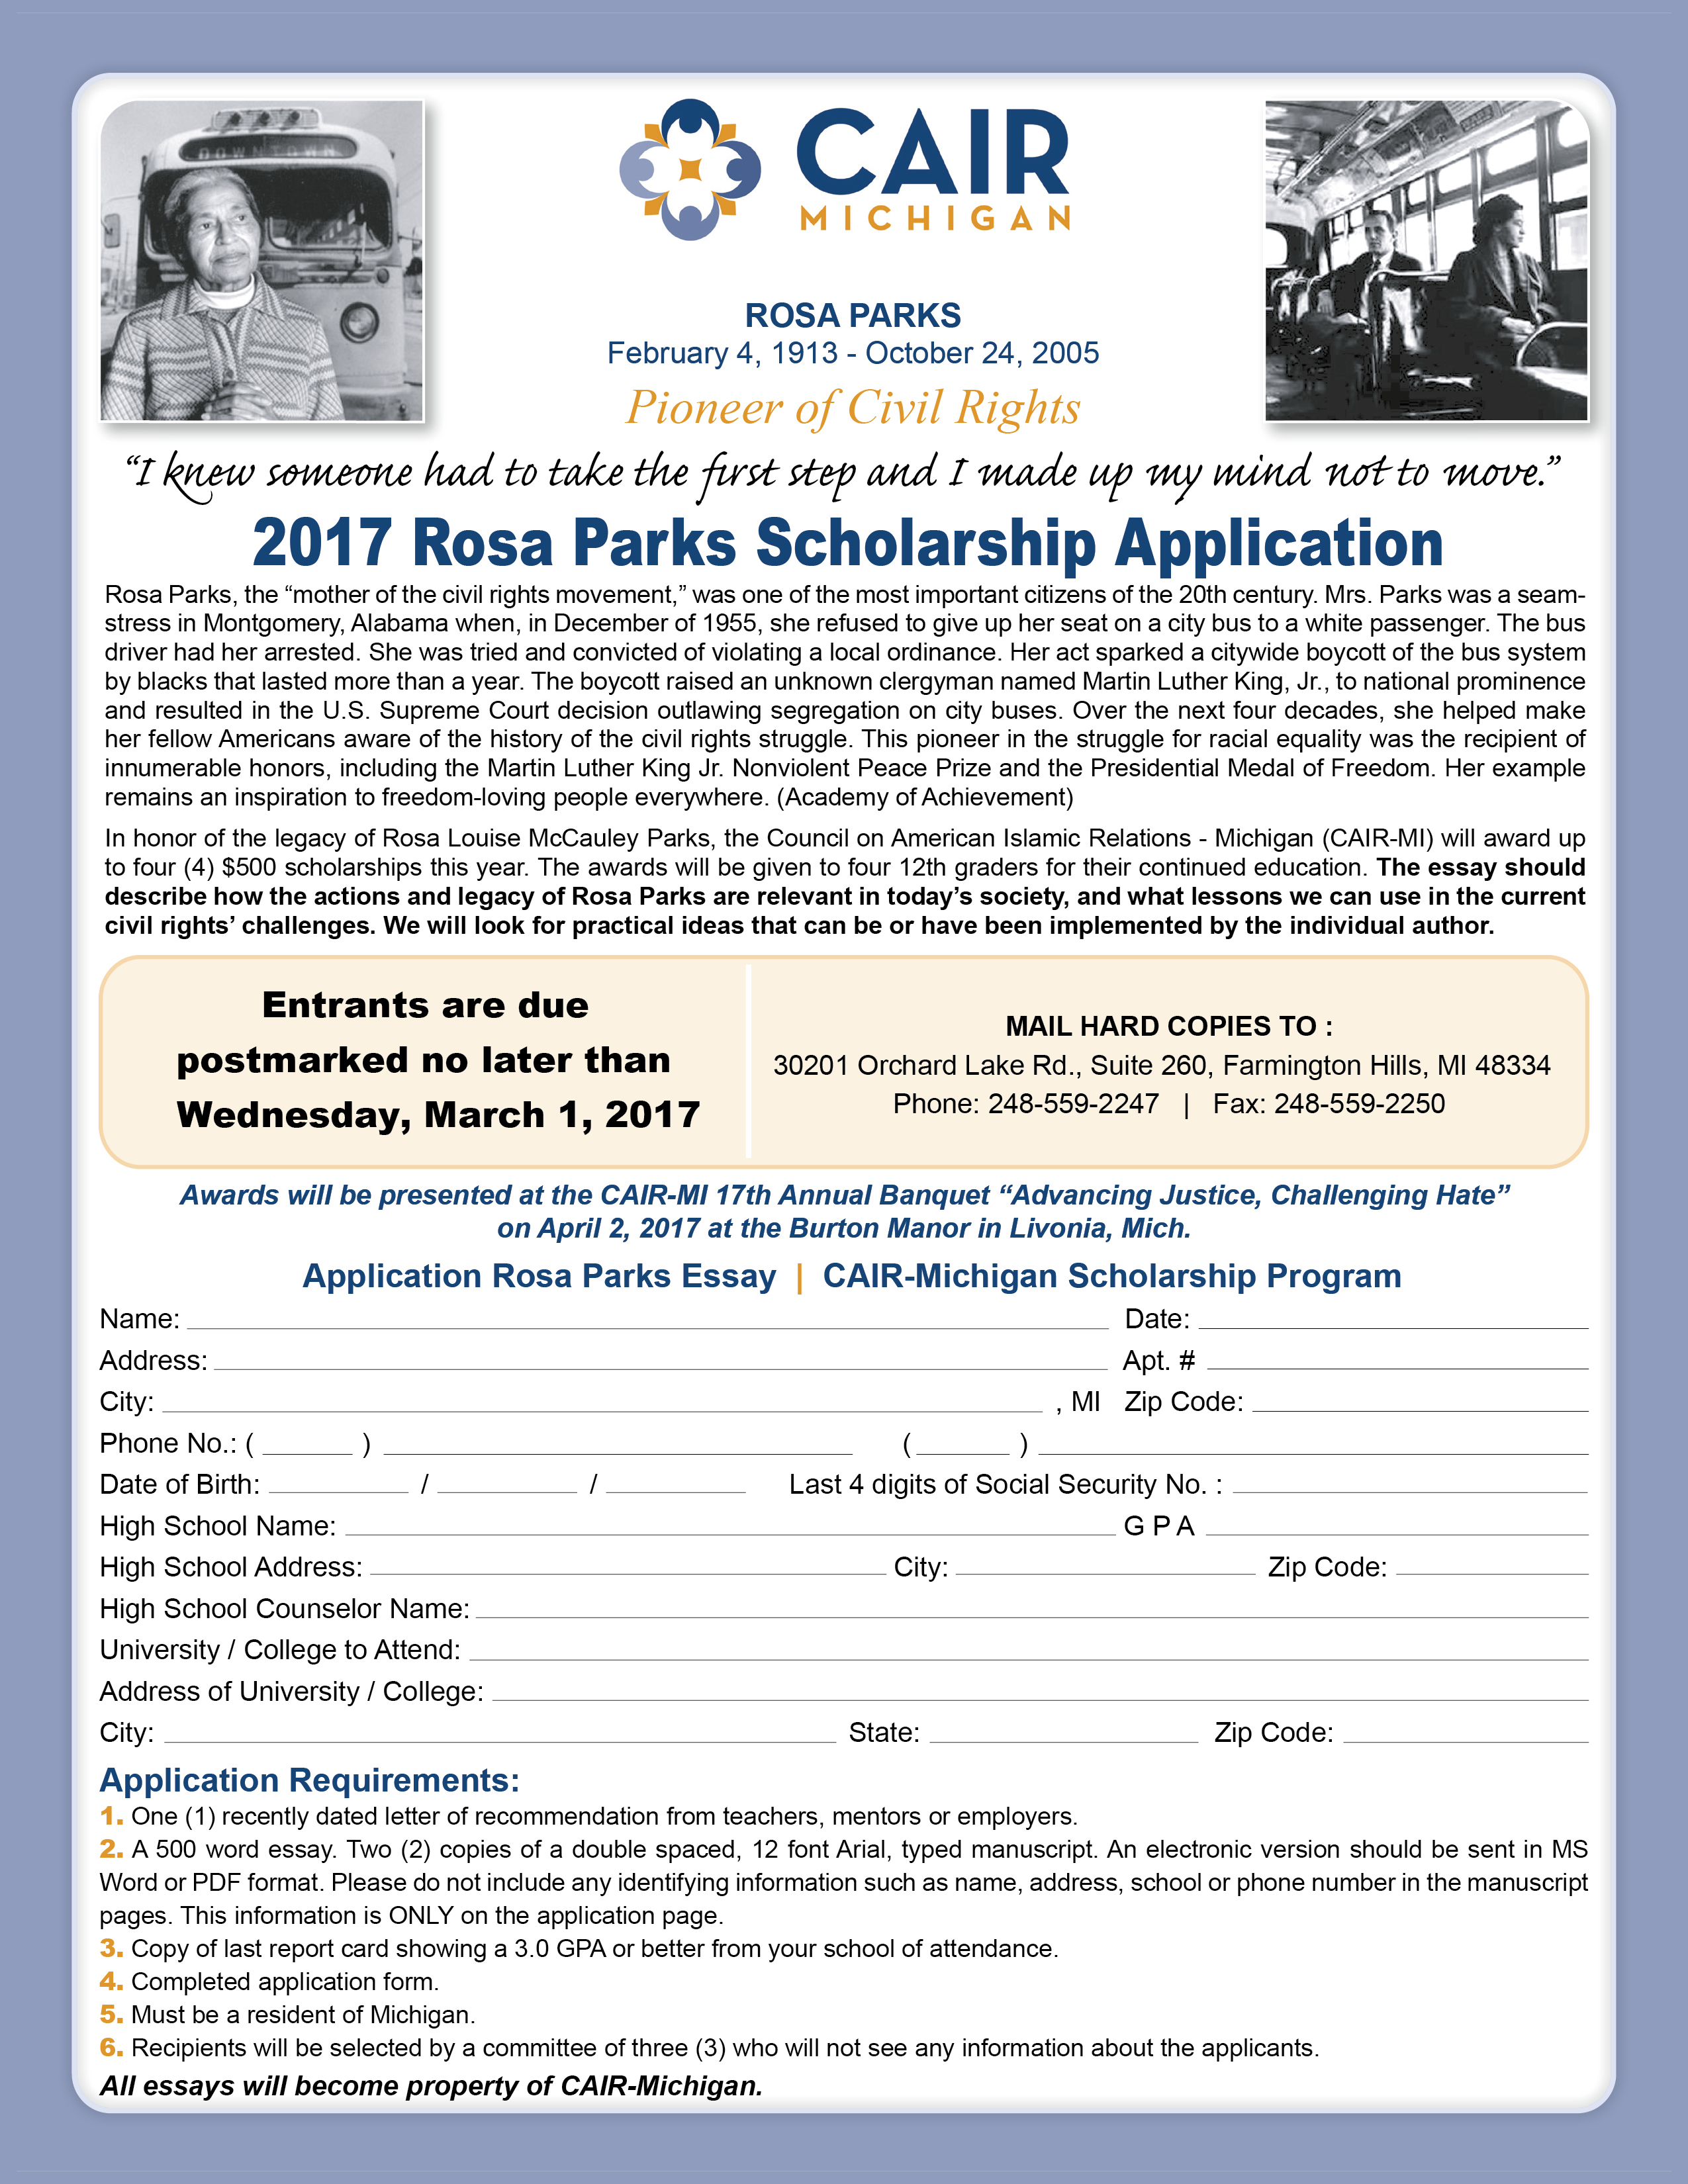 park scholarship essay The park scholarship is available to entering first - year students at north carolina state university selection for this award will be based on scholarship, leadership, service, and character you must be a us citizen and be endorsed by your guidance counselor to be considered for this award.